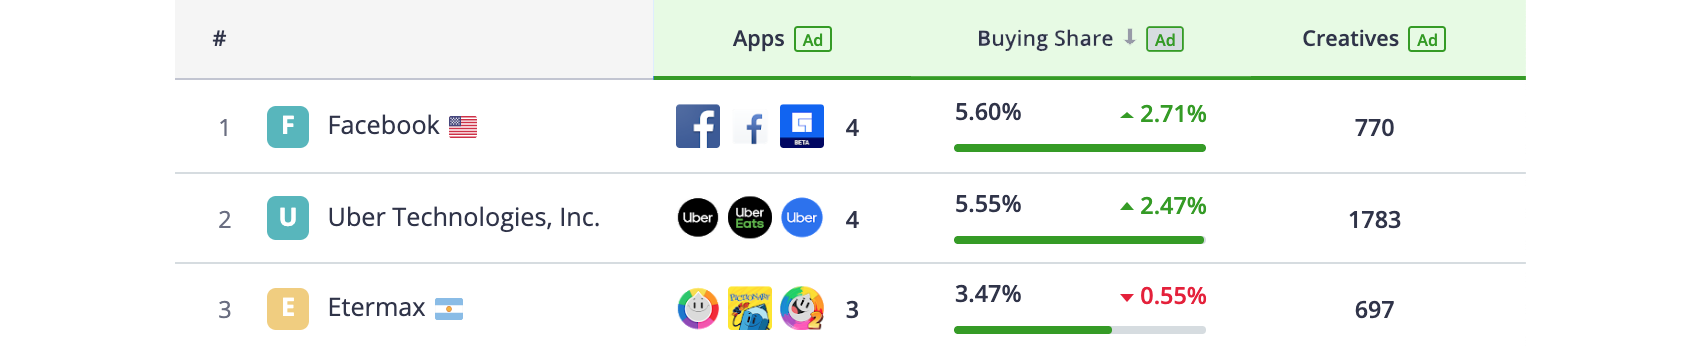 Top 3 Publishers, Android